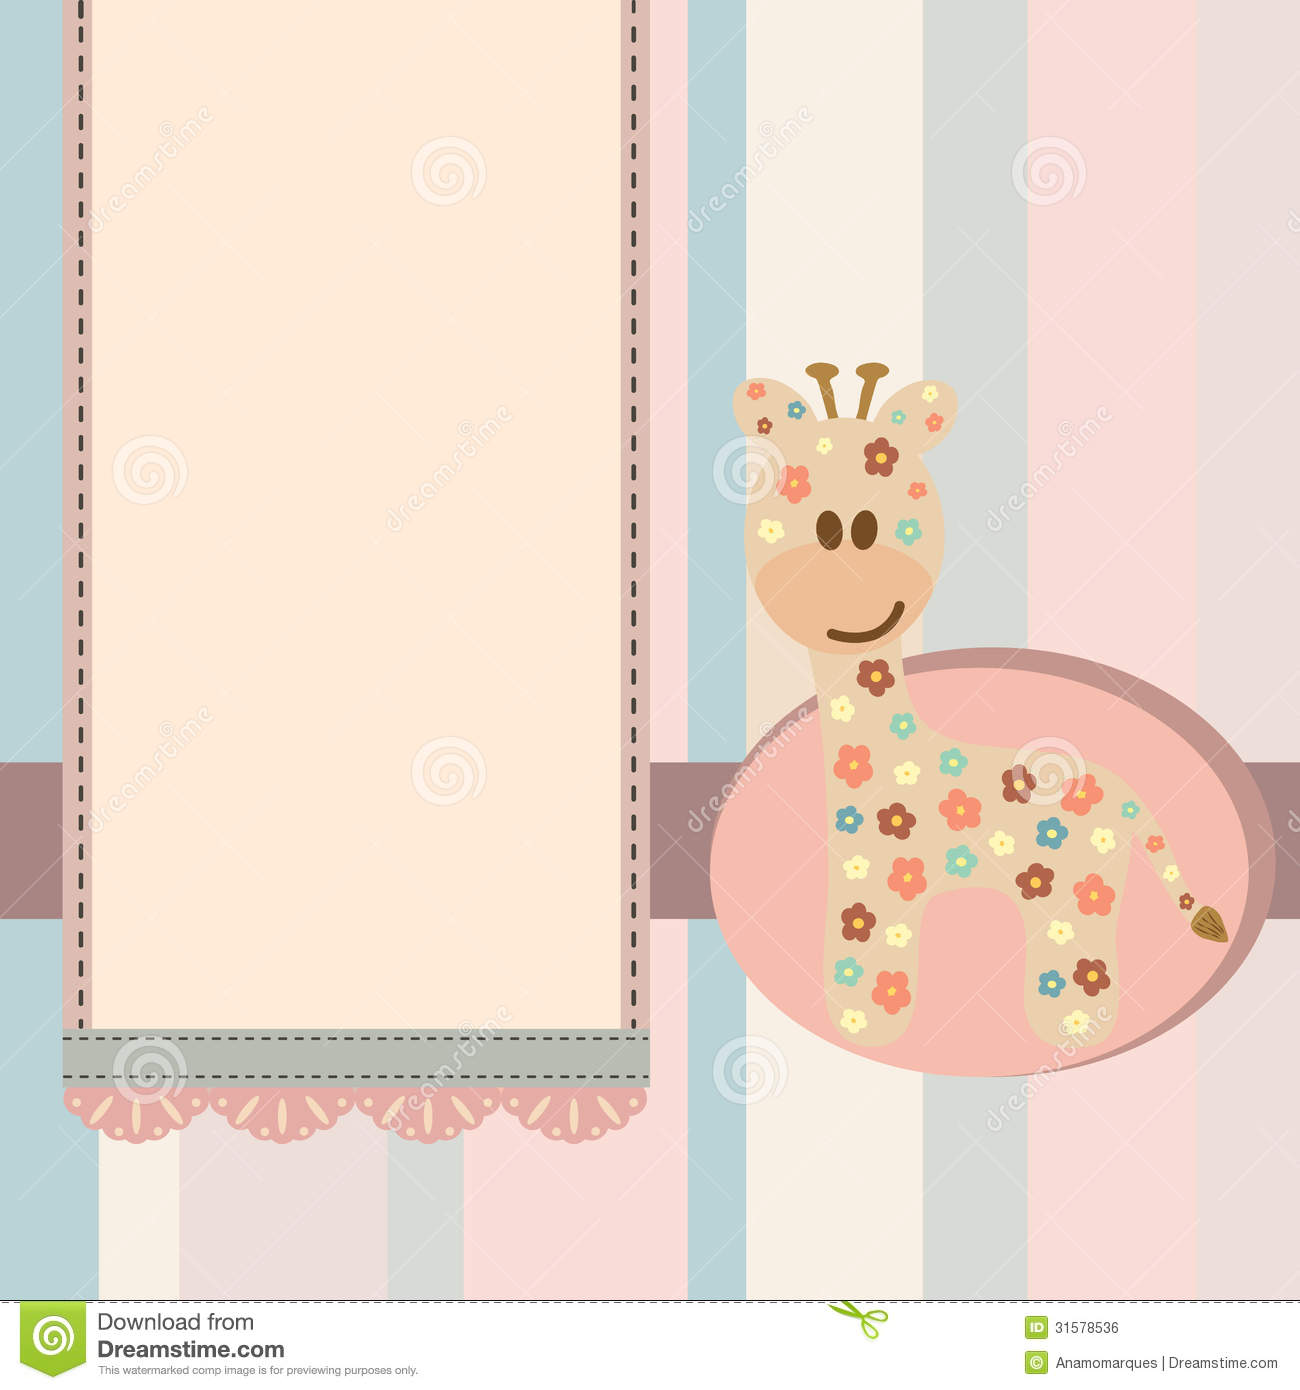 Baby Shower Invitation Card Template was luxury invitations example